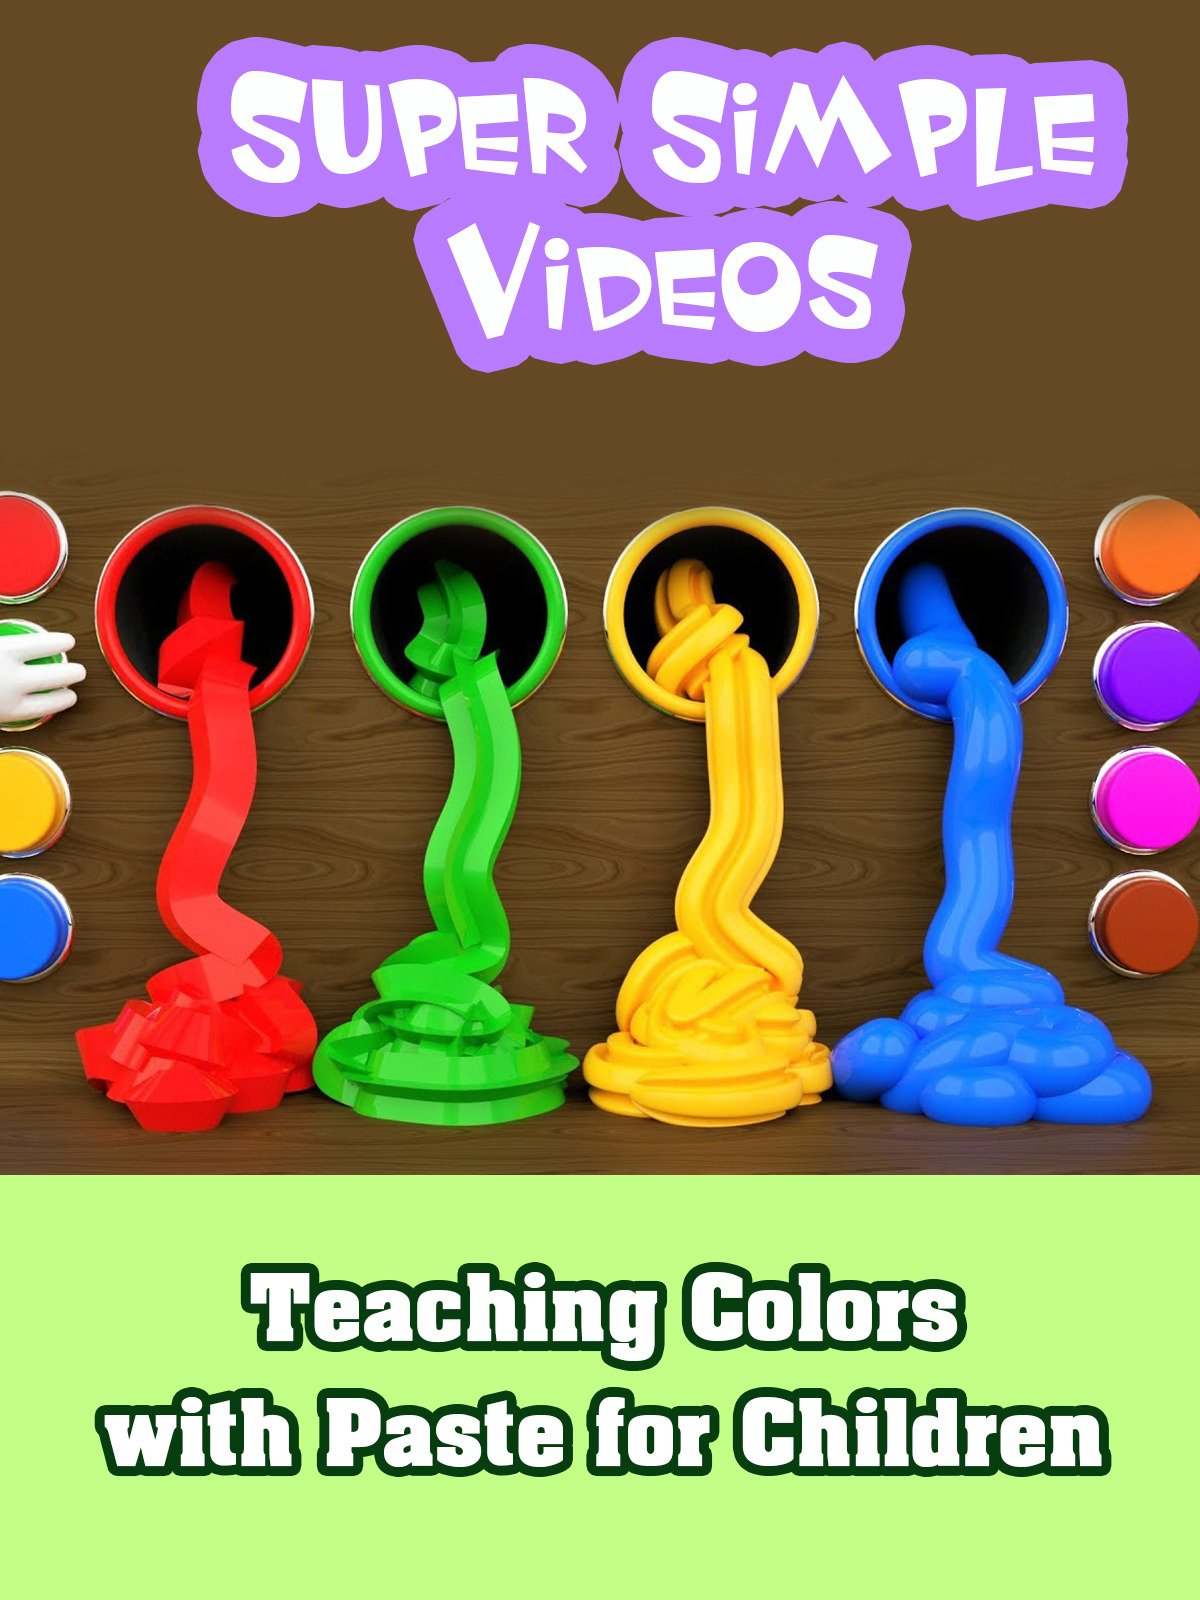 Teaching Colors with Paste for Children